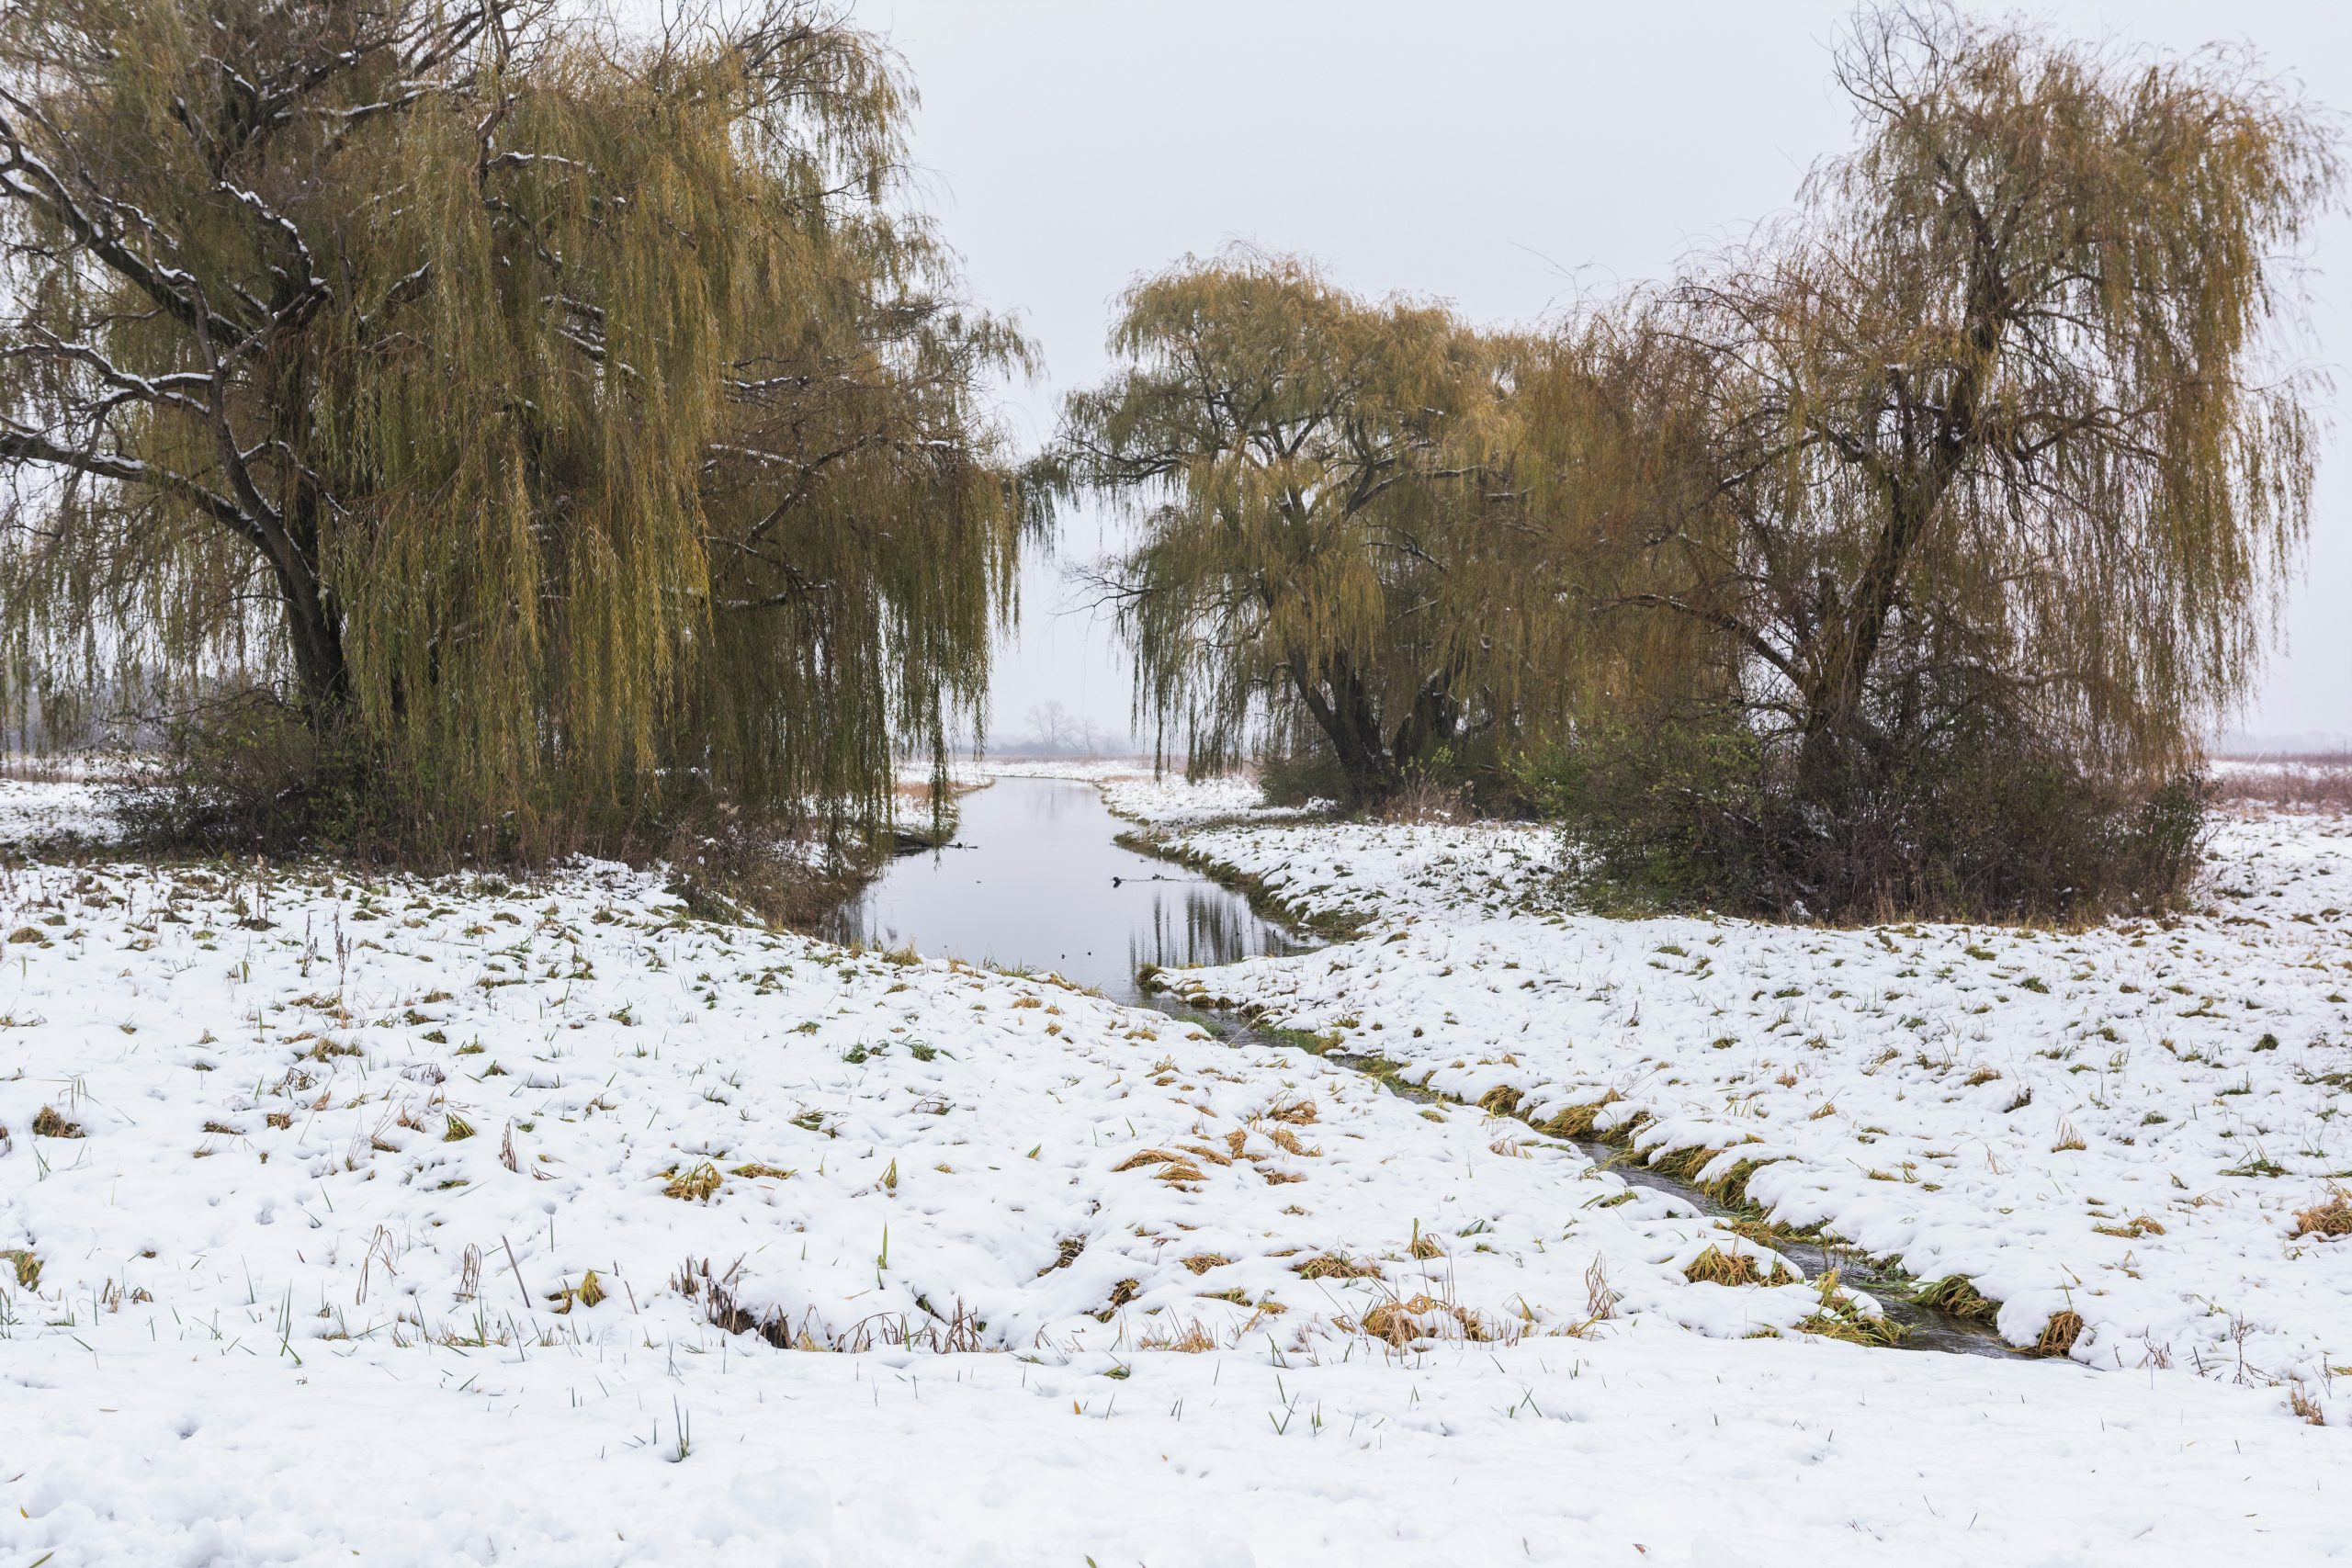 Dec. 6, 2016: Willows rise through the snowy carpet. nature, landscape, willow, tree, plant, prairie, winter, snow Photo: Leticia Shaddix